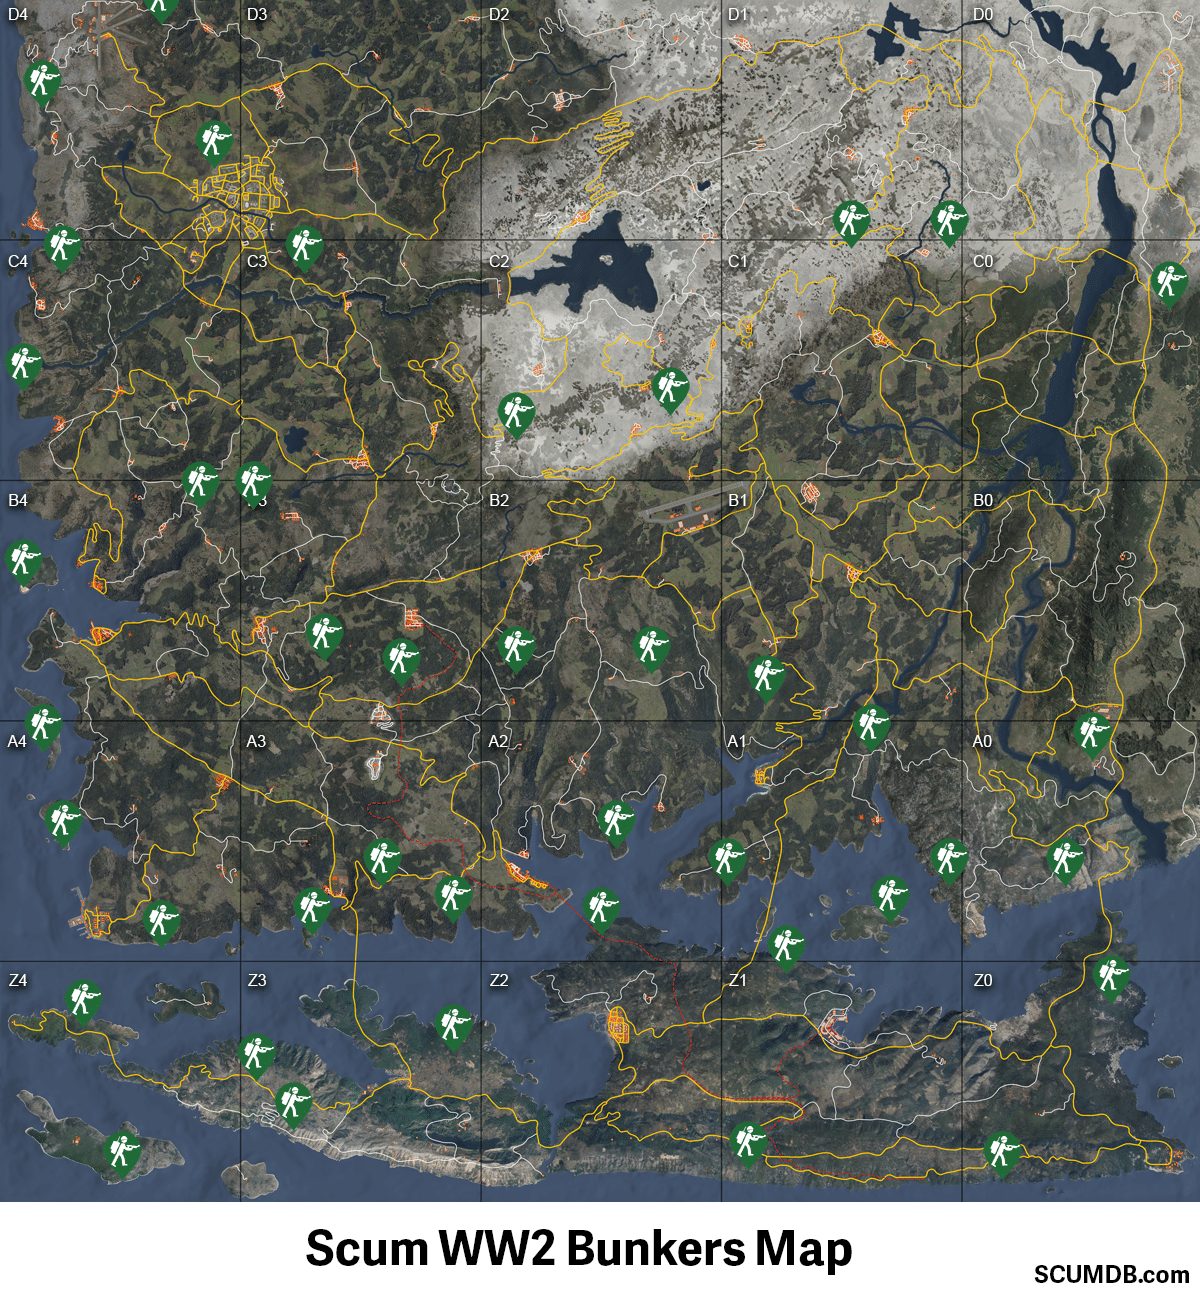 Scum WW2 Bunkers Locations Map